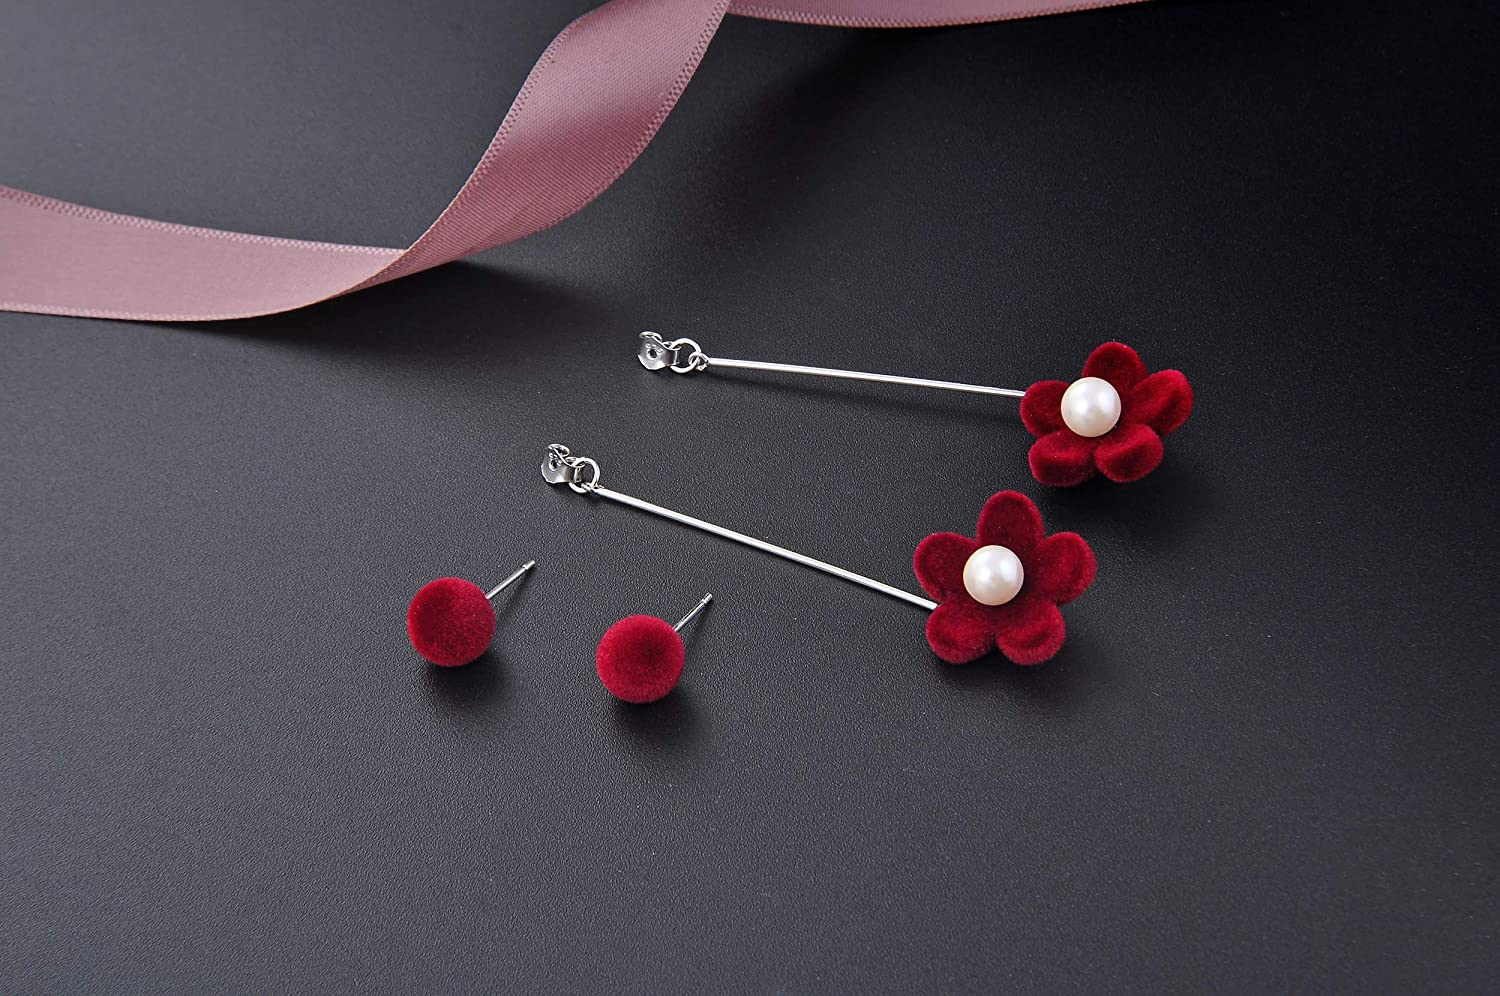 FHX 925 Sterling Silver Simple Fashion Flower Female Fashion Beaded Earrings Jewelry Casual Mix is Very Beautiful Customized for You Employee Benefits Weddings Birthday Travel Festivals.